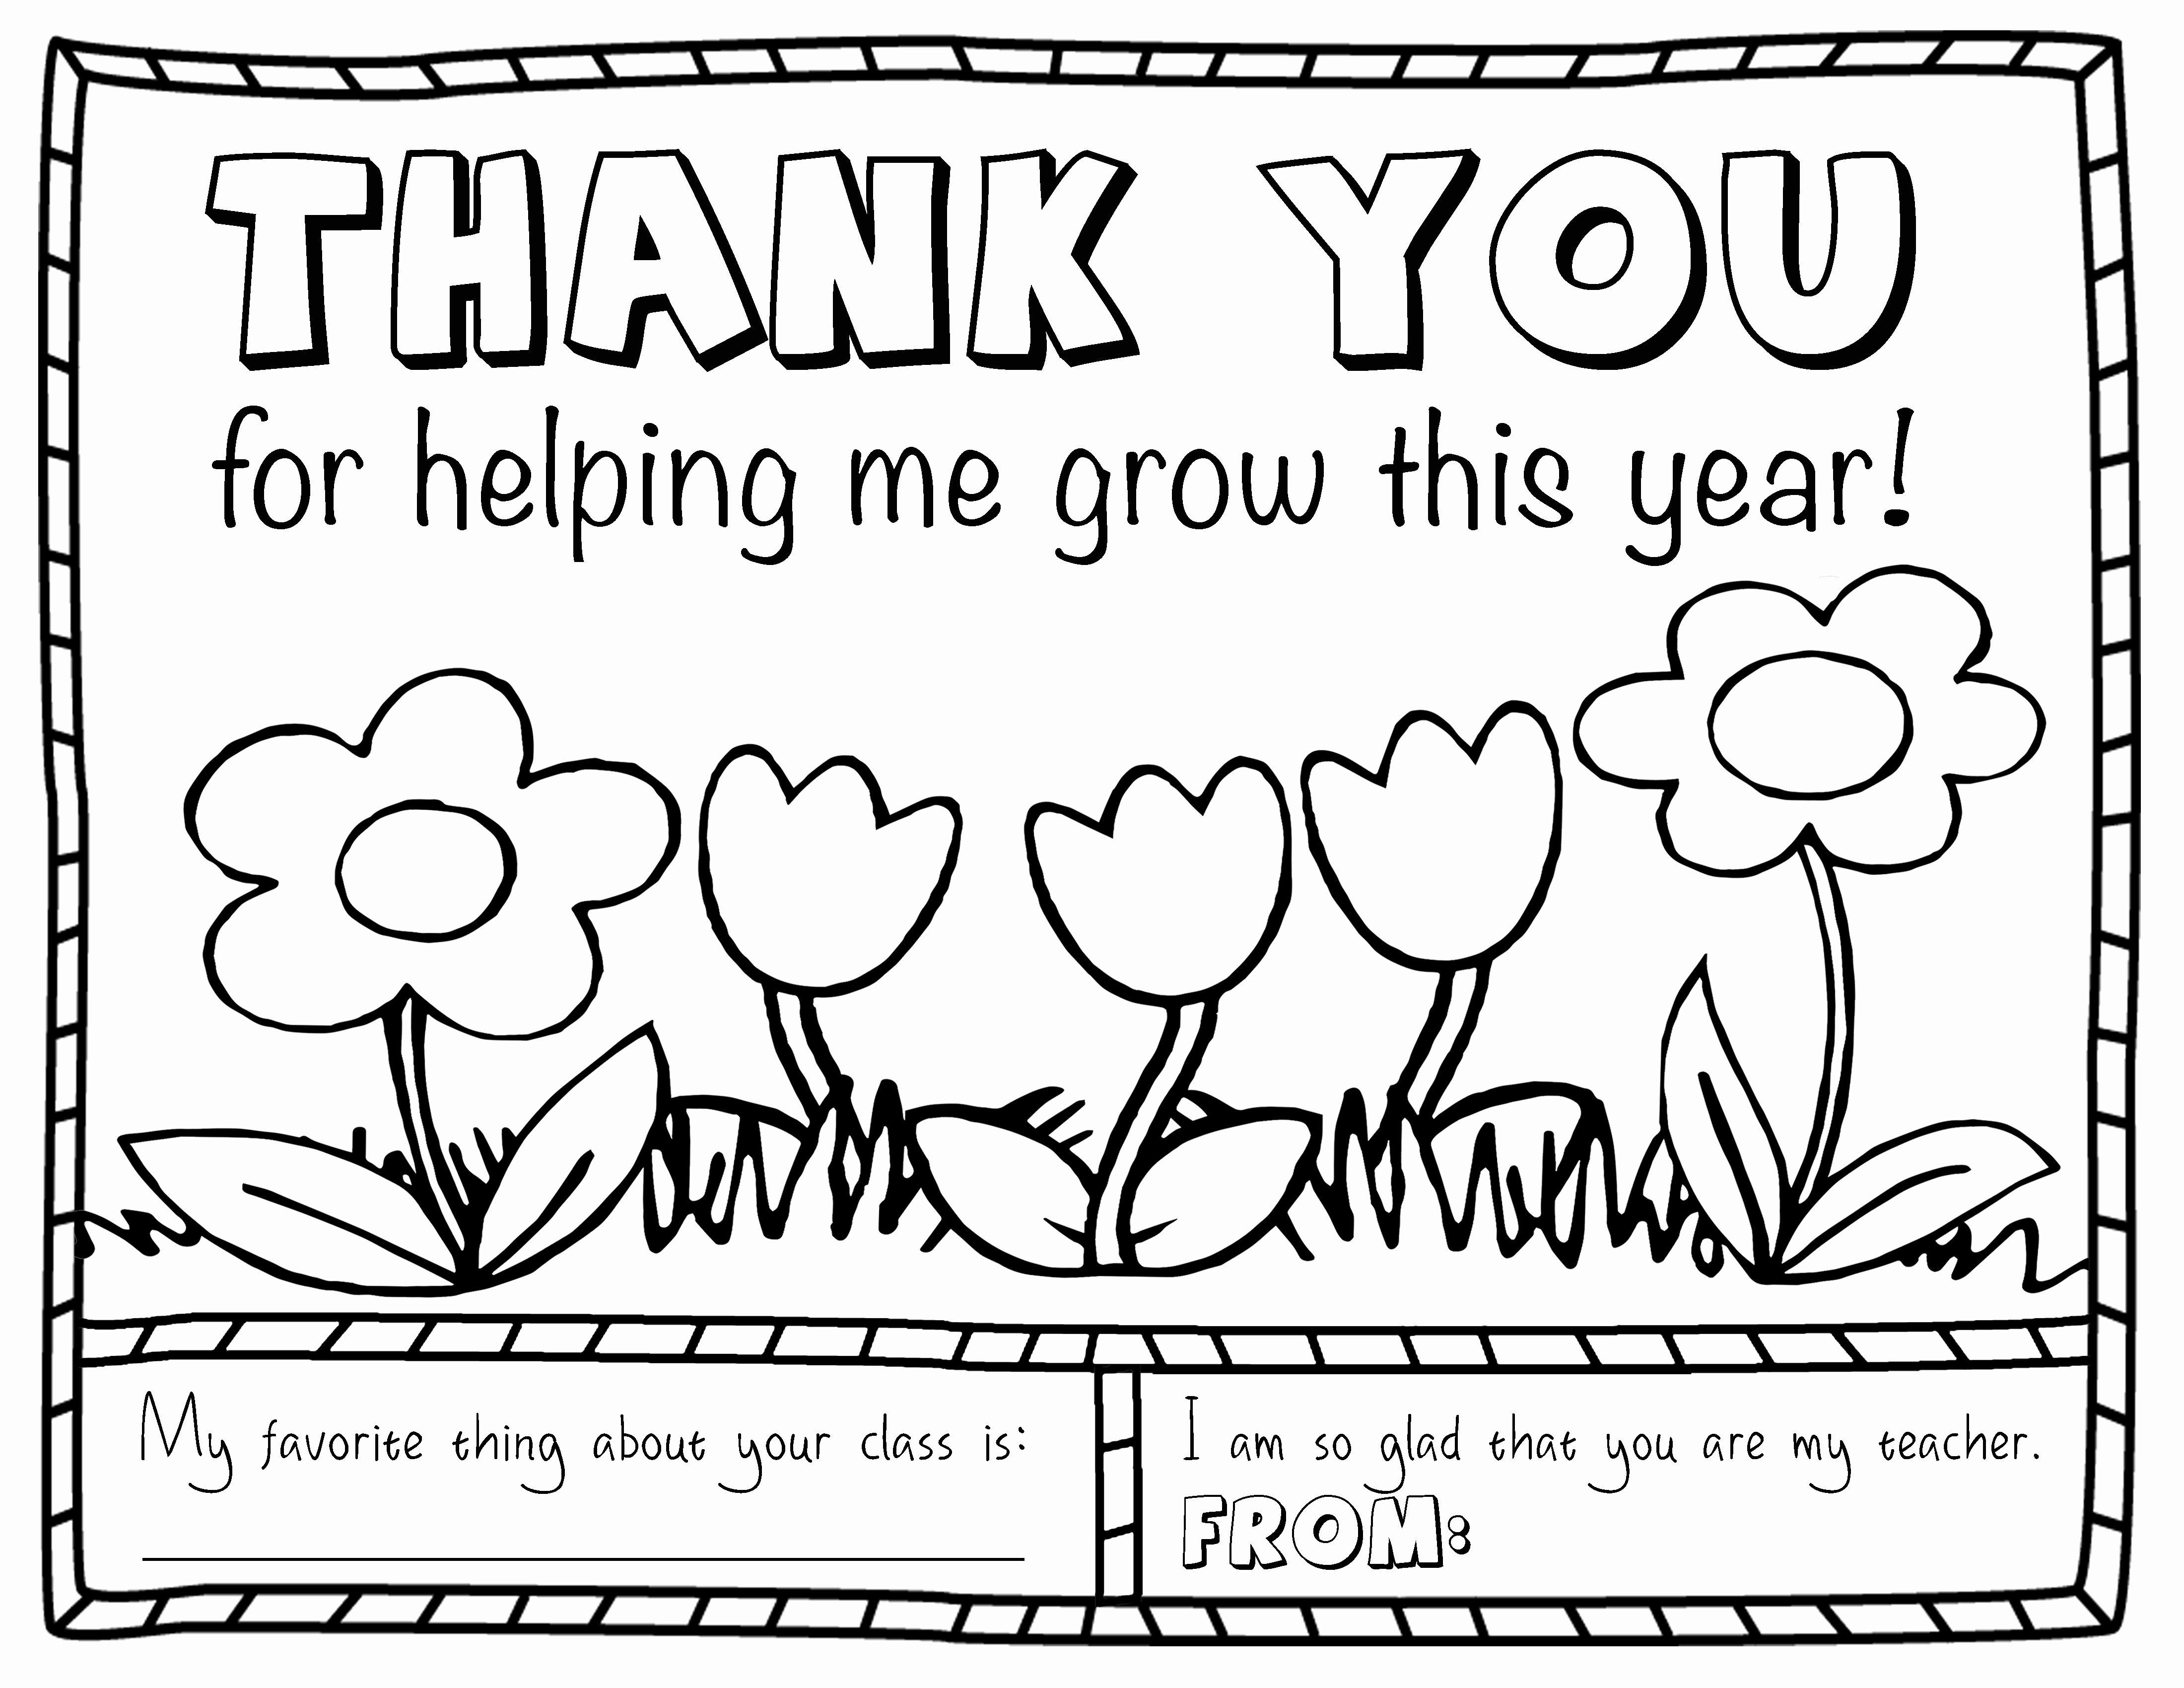 Teacher Appreciation Week Cards Lovely Coloring Coloring Pages Thank Yo Teacher Appreciation Printables Teacher Appreciation Cards Coloring Pages For Teenagers